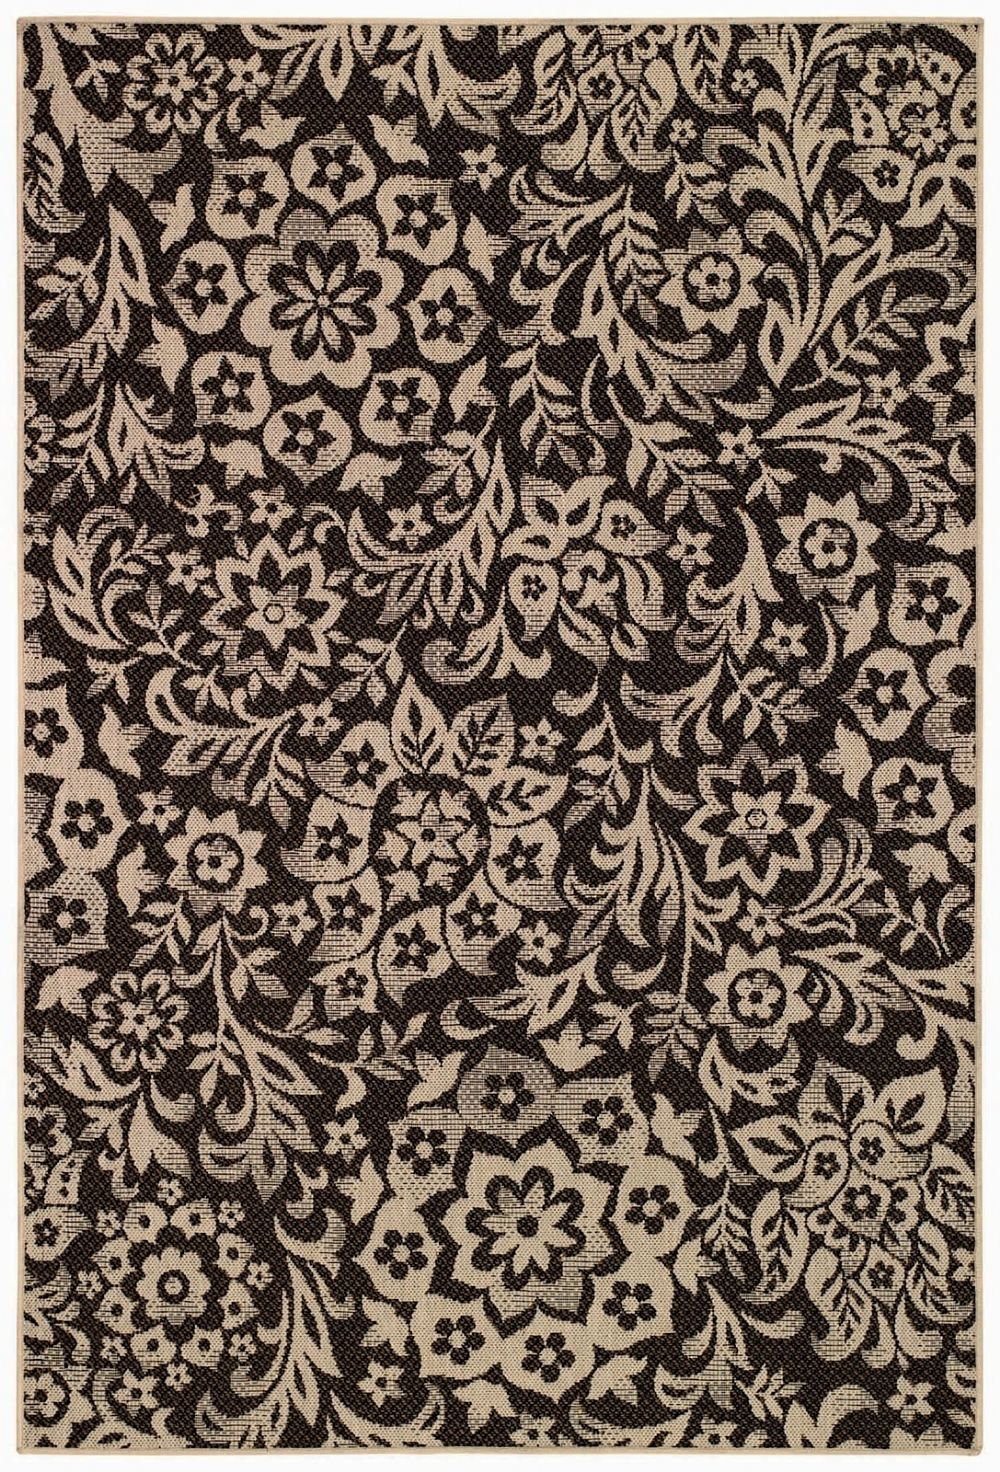 capel sterling-jardin contemporary area rug collection